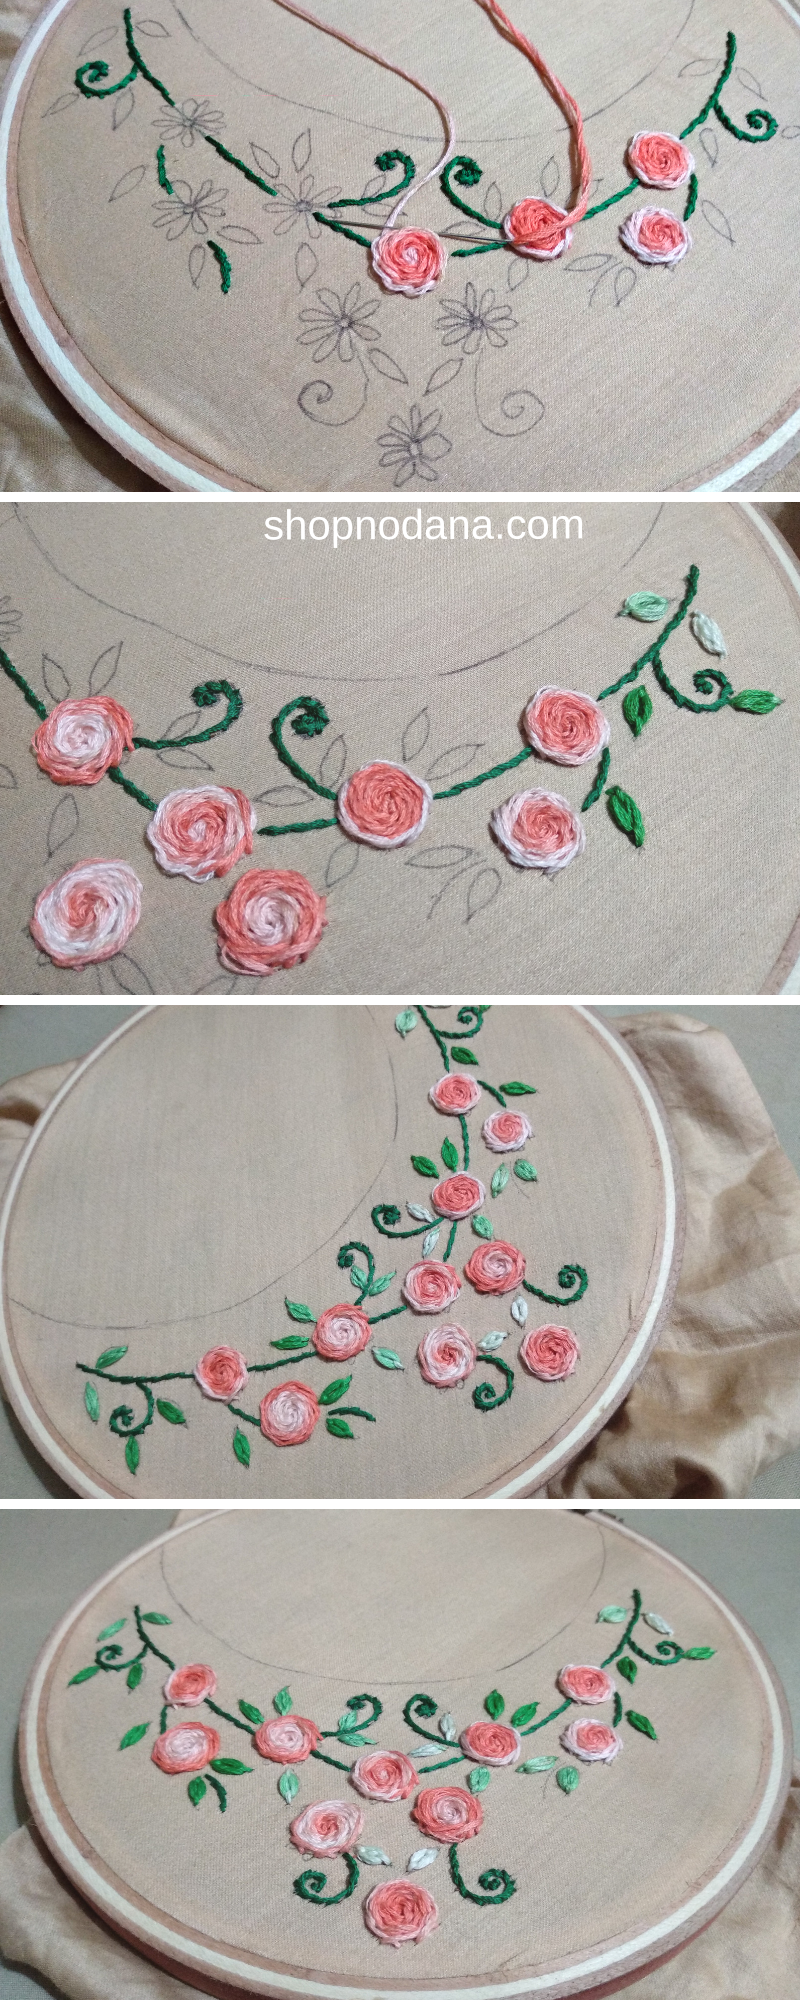 Hand embroidery design for neck-shopnodana